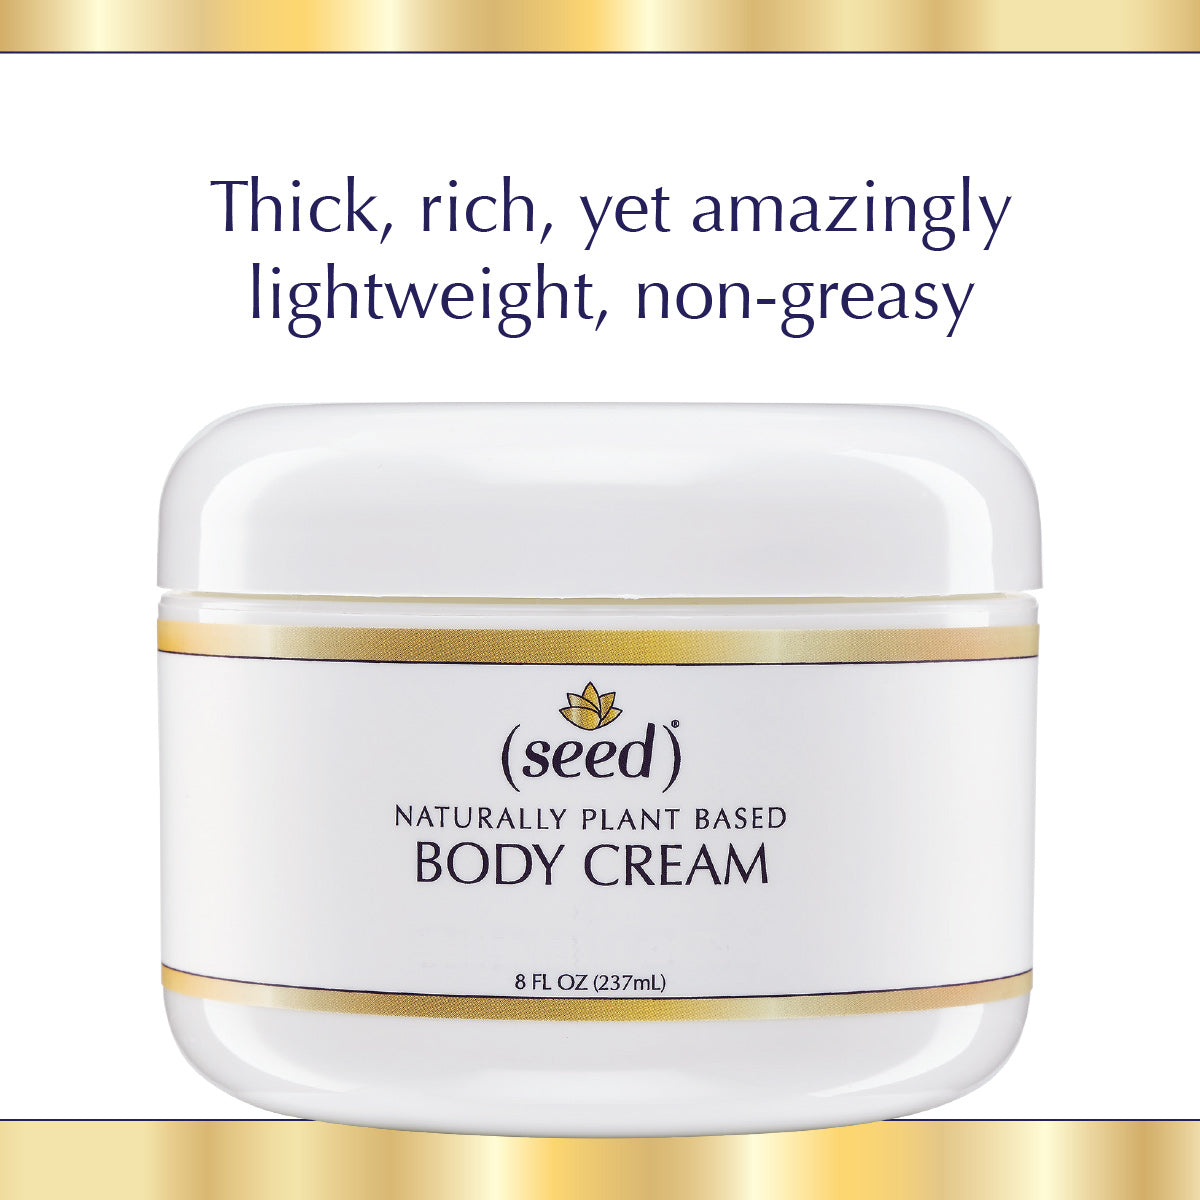 Seed Body Cream Benefits